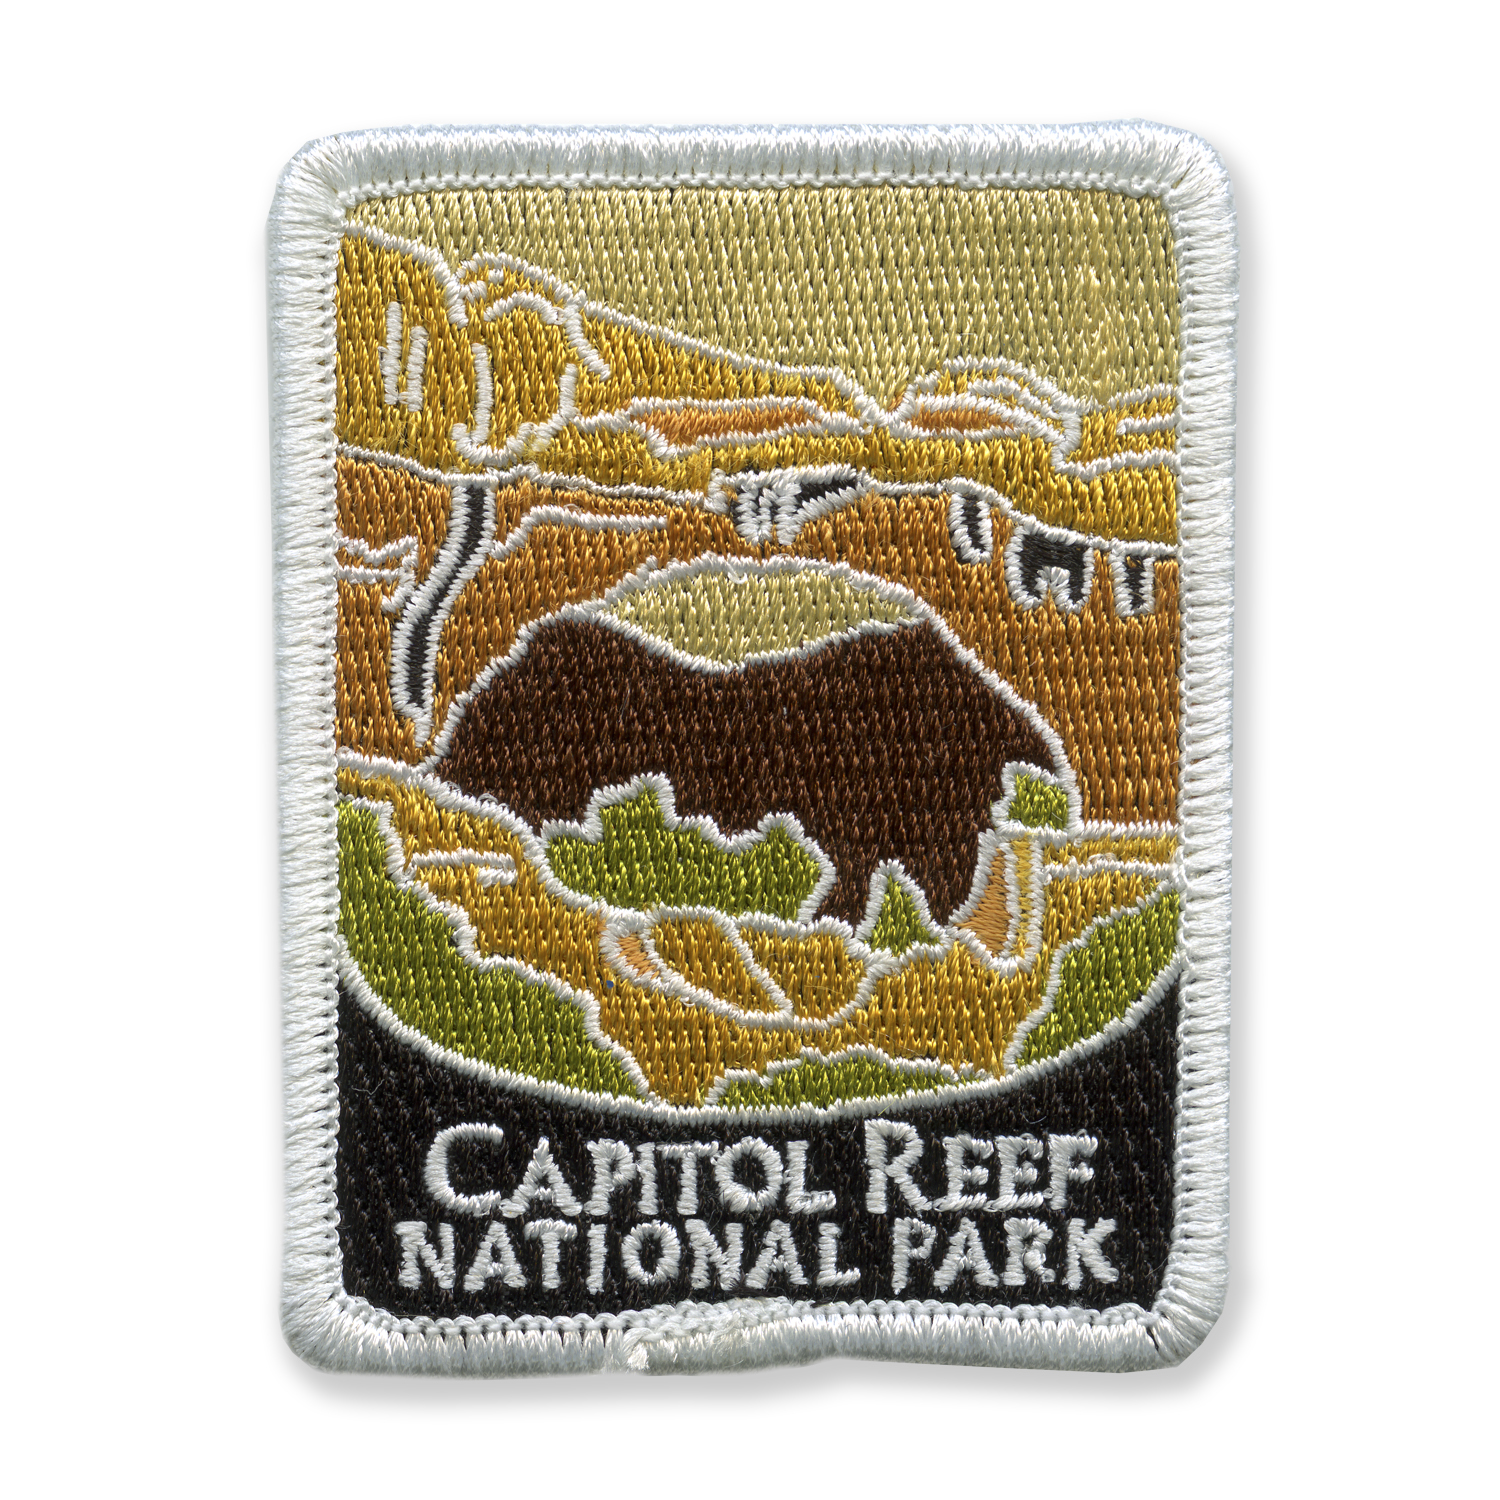 nps_patch_project_capitol_reef_national_park_service_patch_1.jpg